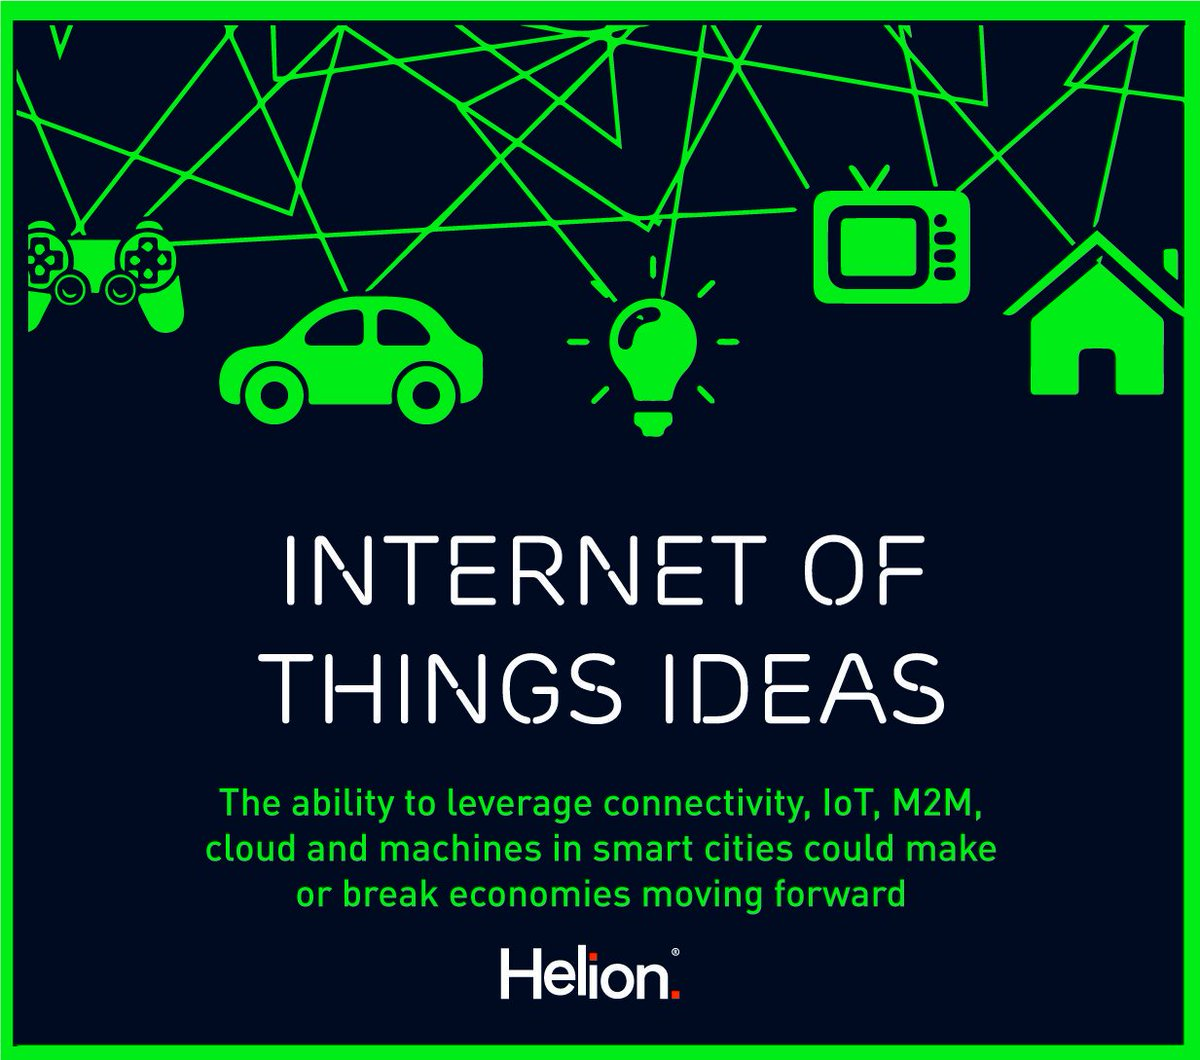 5G will bring the Internet of Things to life - Corporate Africa News